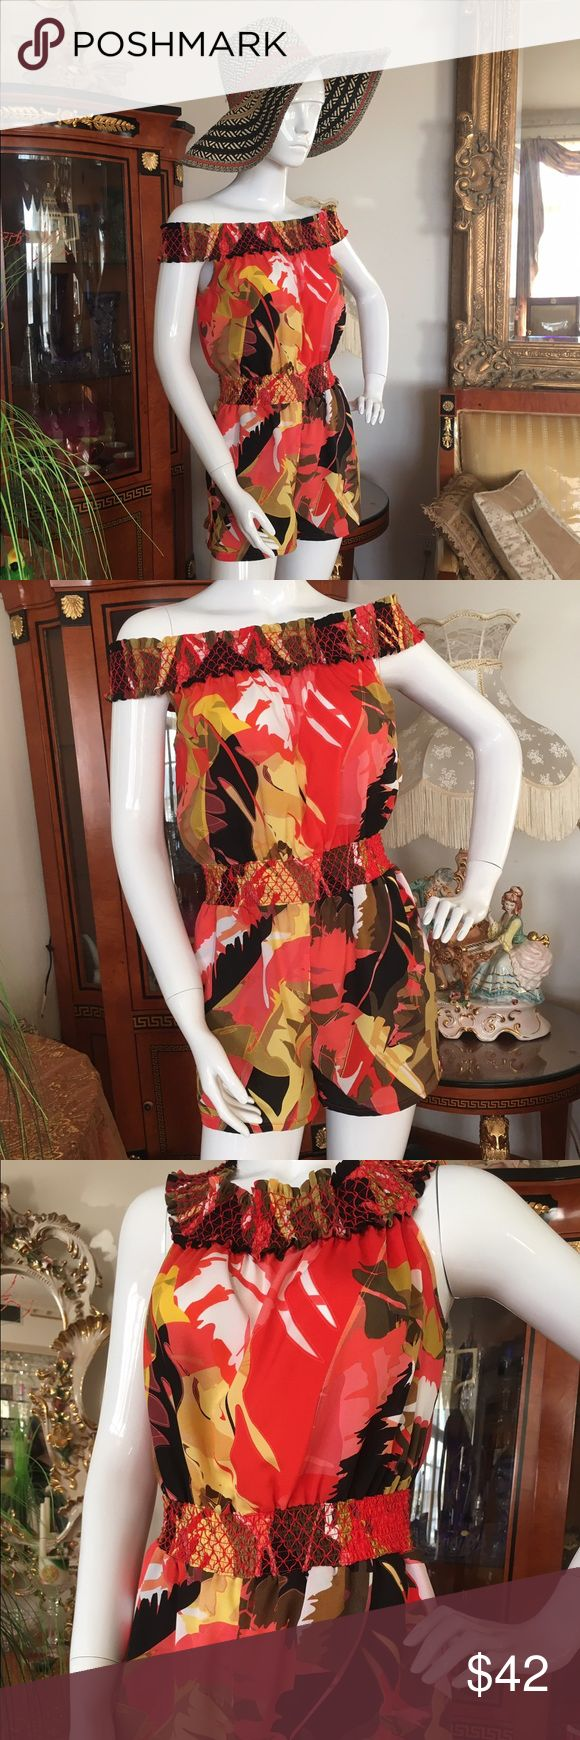 Bebe gorgeous lady's romper bebe's multicolored romper, for women, in great condition bebe Other